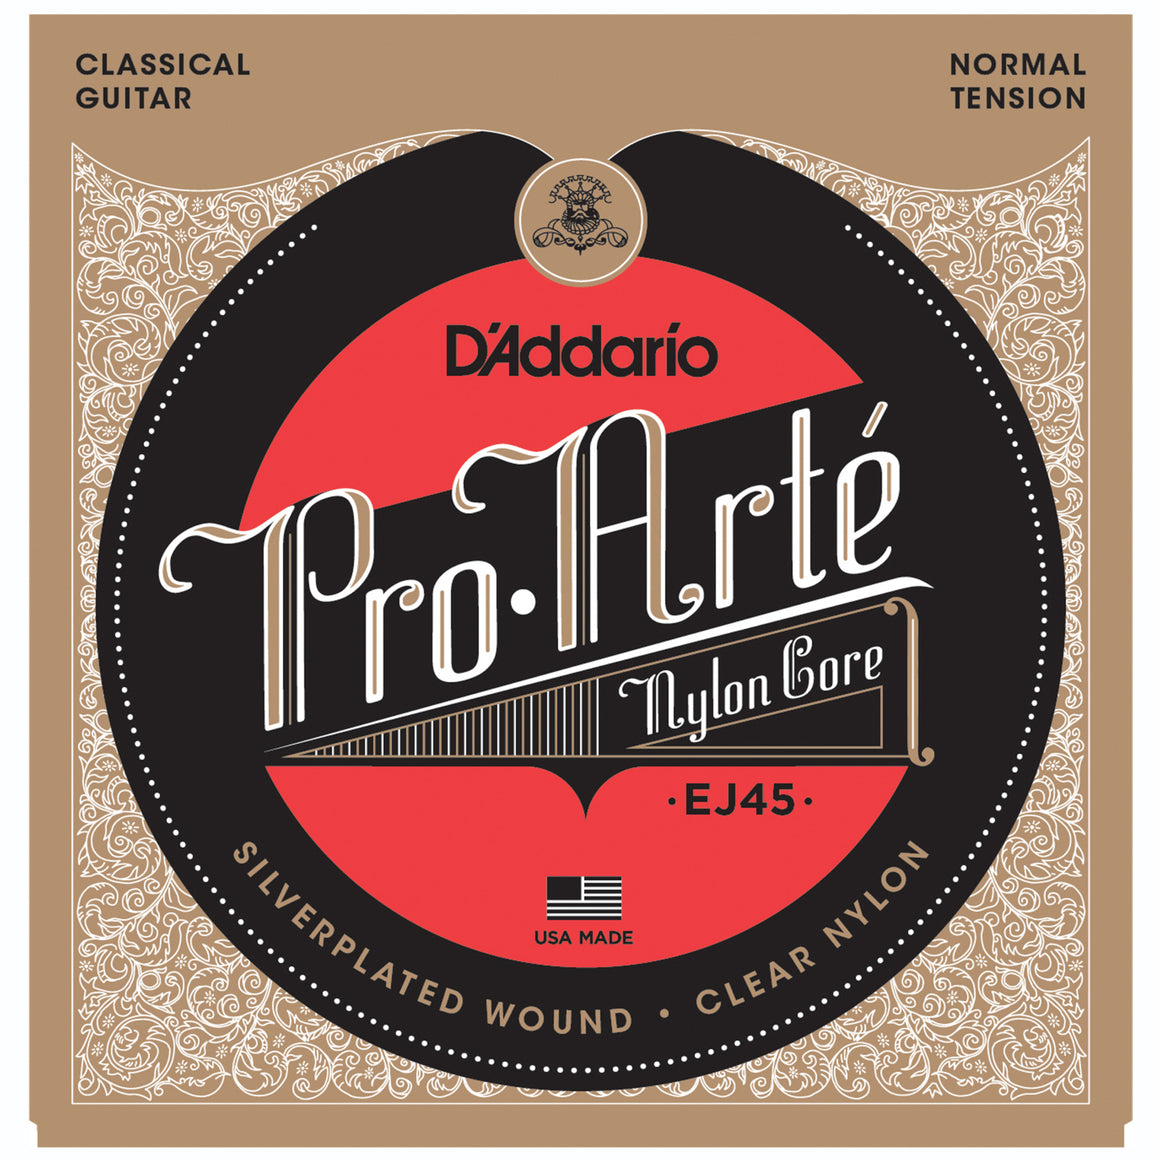 D'Addario EJ45 Pro Arte Normal Classical Guitar Strings